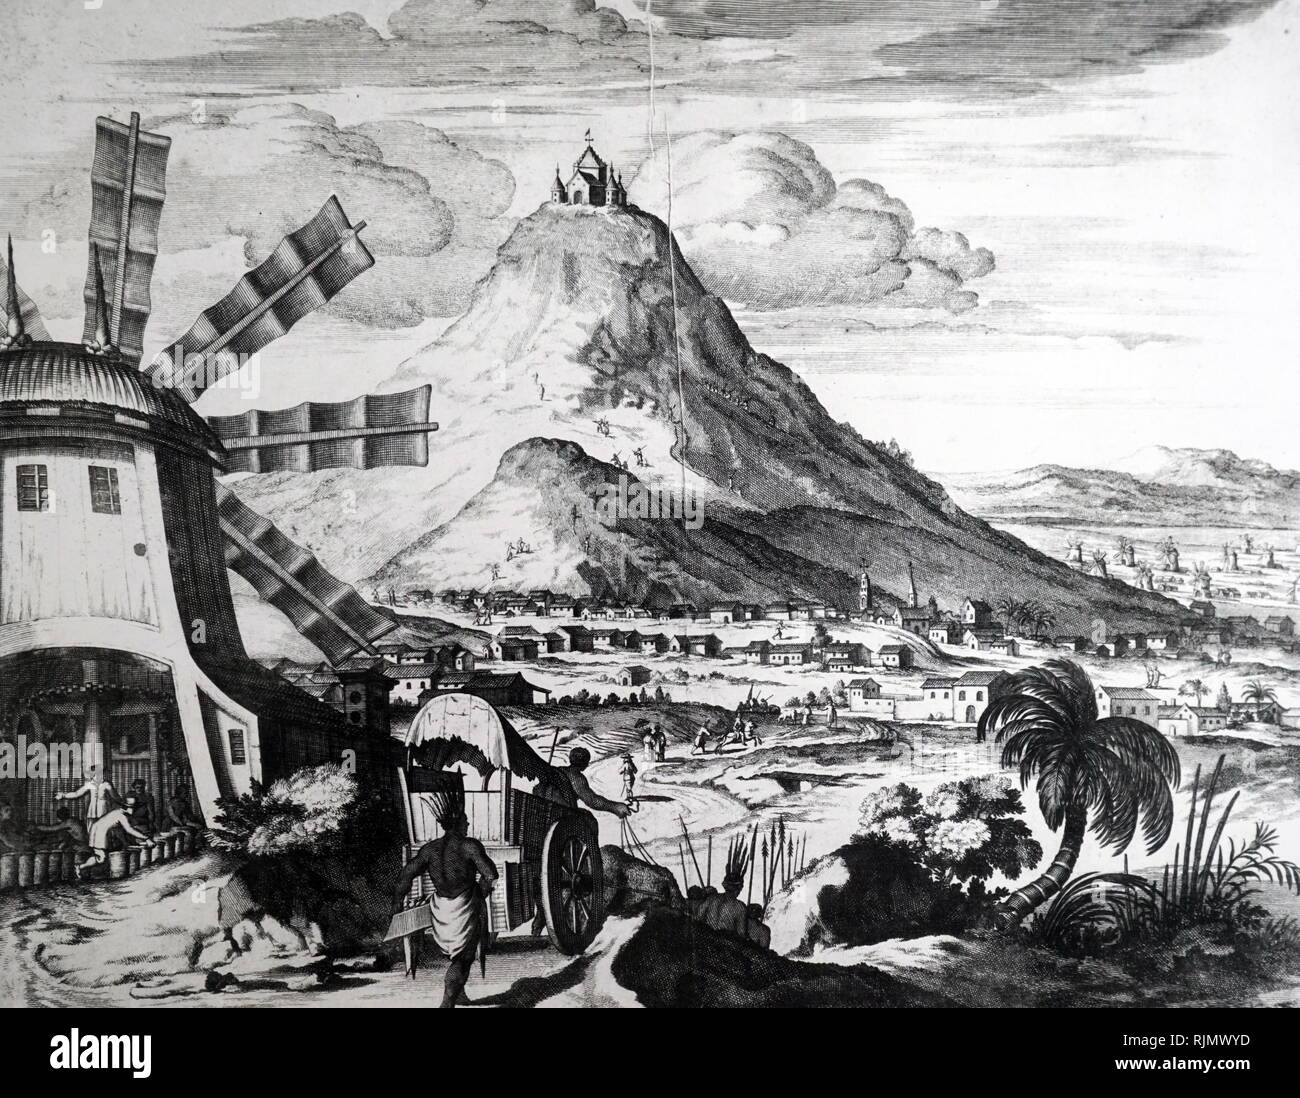 Mount Potosi (Bolivia); famous after rich deposits of silver were discovered in it in 1545. On the left of the picture is a wind-powered stamping mill, for treating the ore. From a  17th Century copperplate engraving - Stock Image